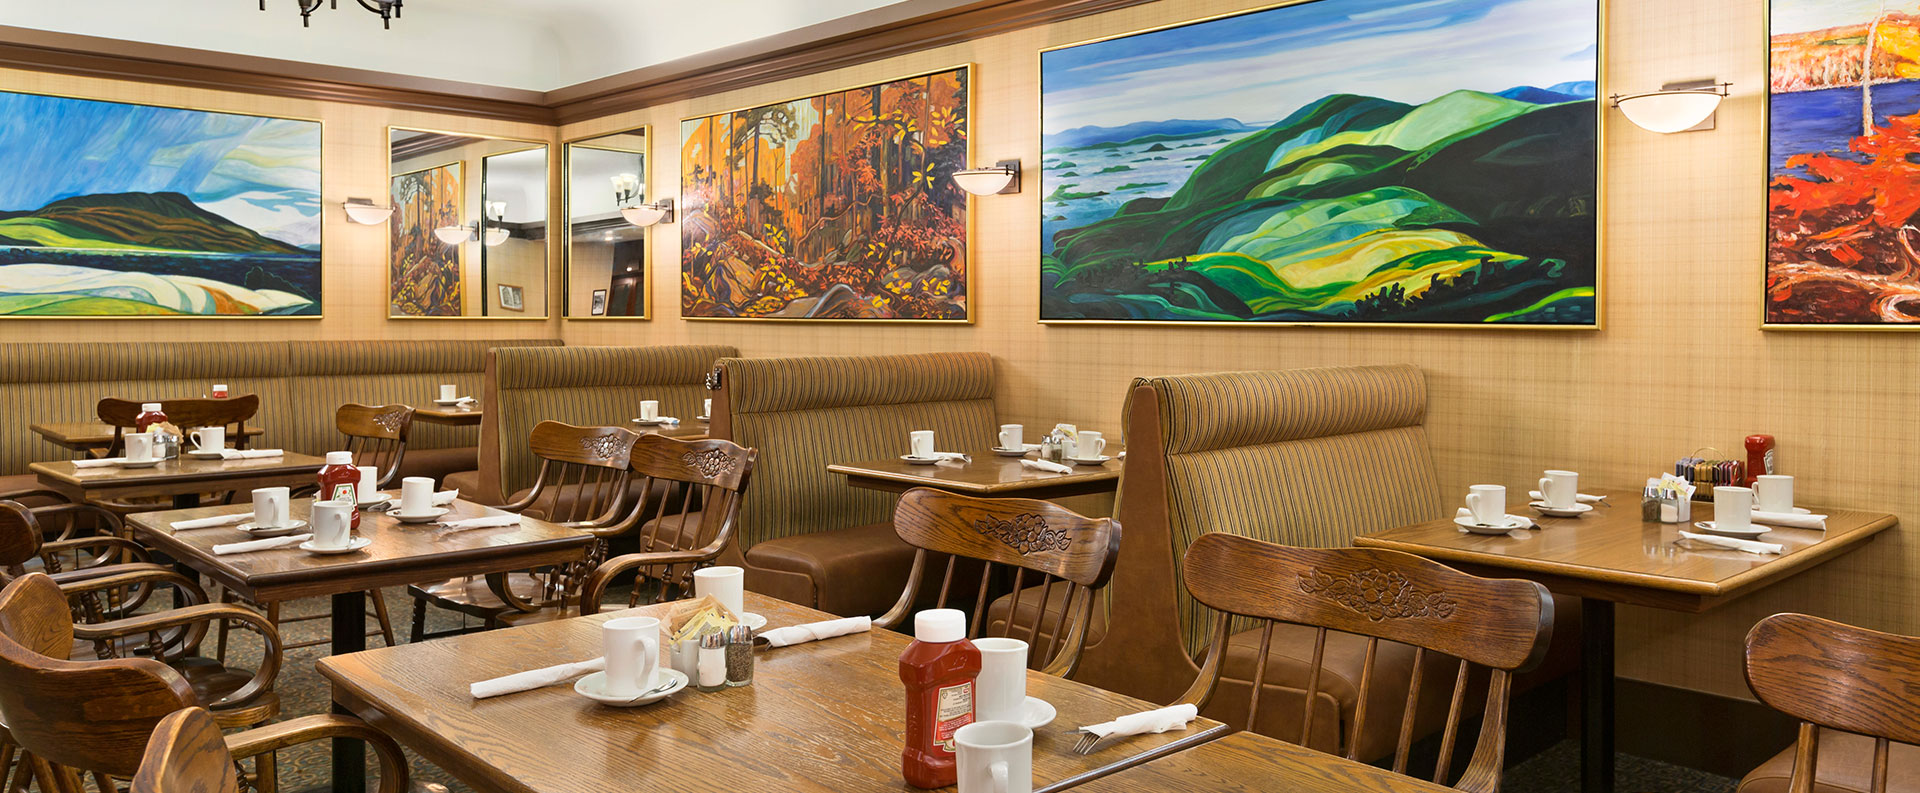 Chelsea's Restaurant, the onsite restaurant at Days Inn Vancouver Downtown is decorated with plush booths, leather seating and large colorful paintings.